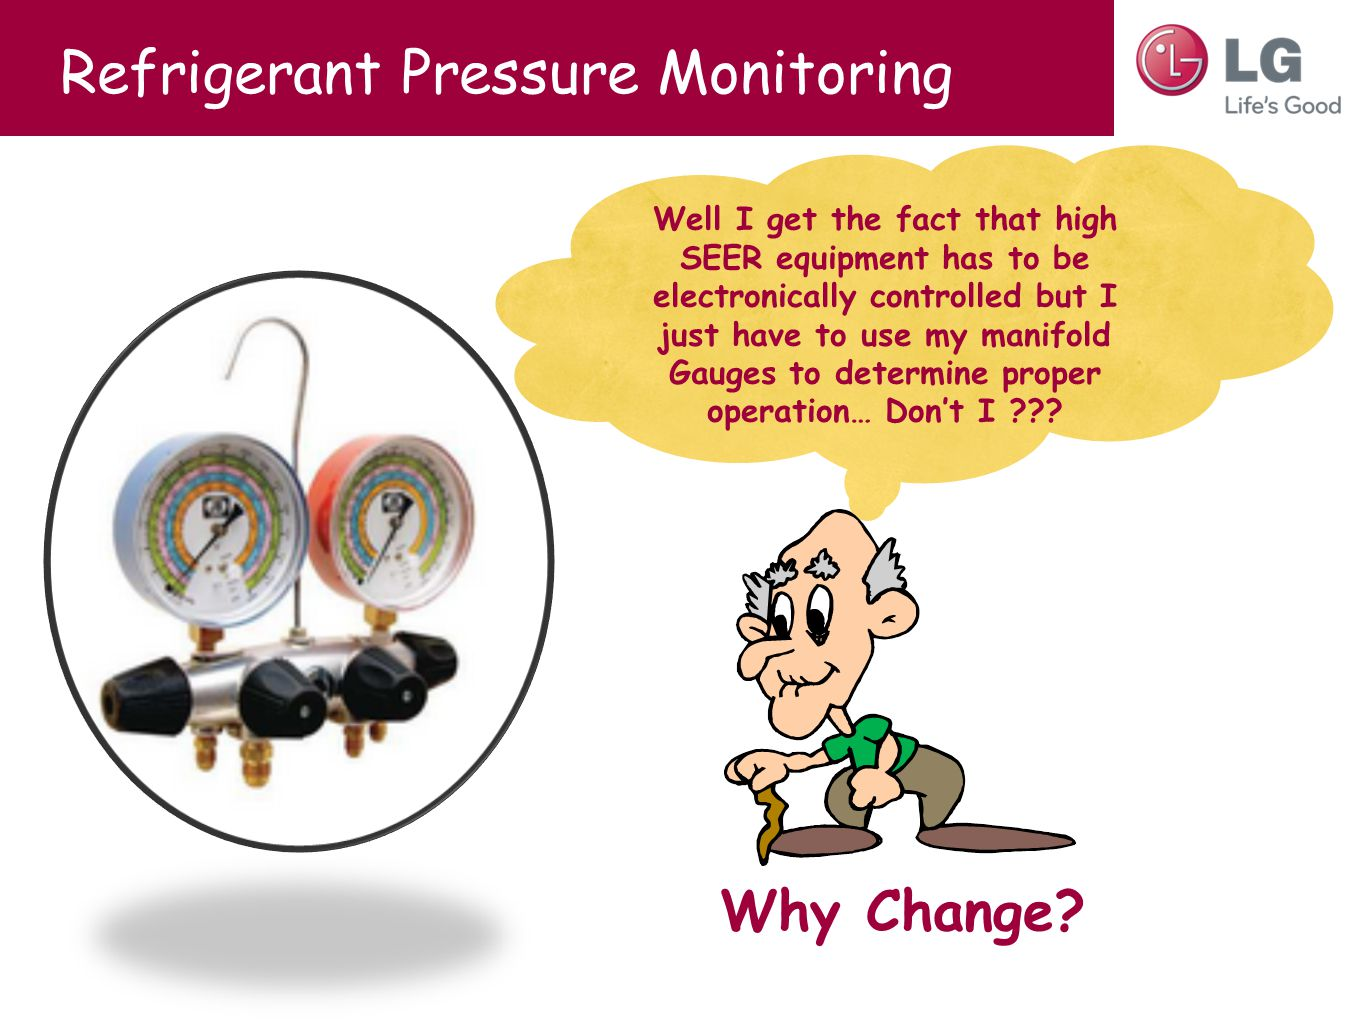 Refrigerant Pressure Monitoring Well I get the fact that high SEER equipment has to be electronically controlled but I just have to use my manifold Gauges to determine proper operation… Don't I ??.